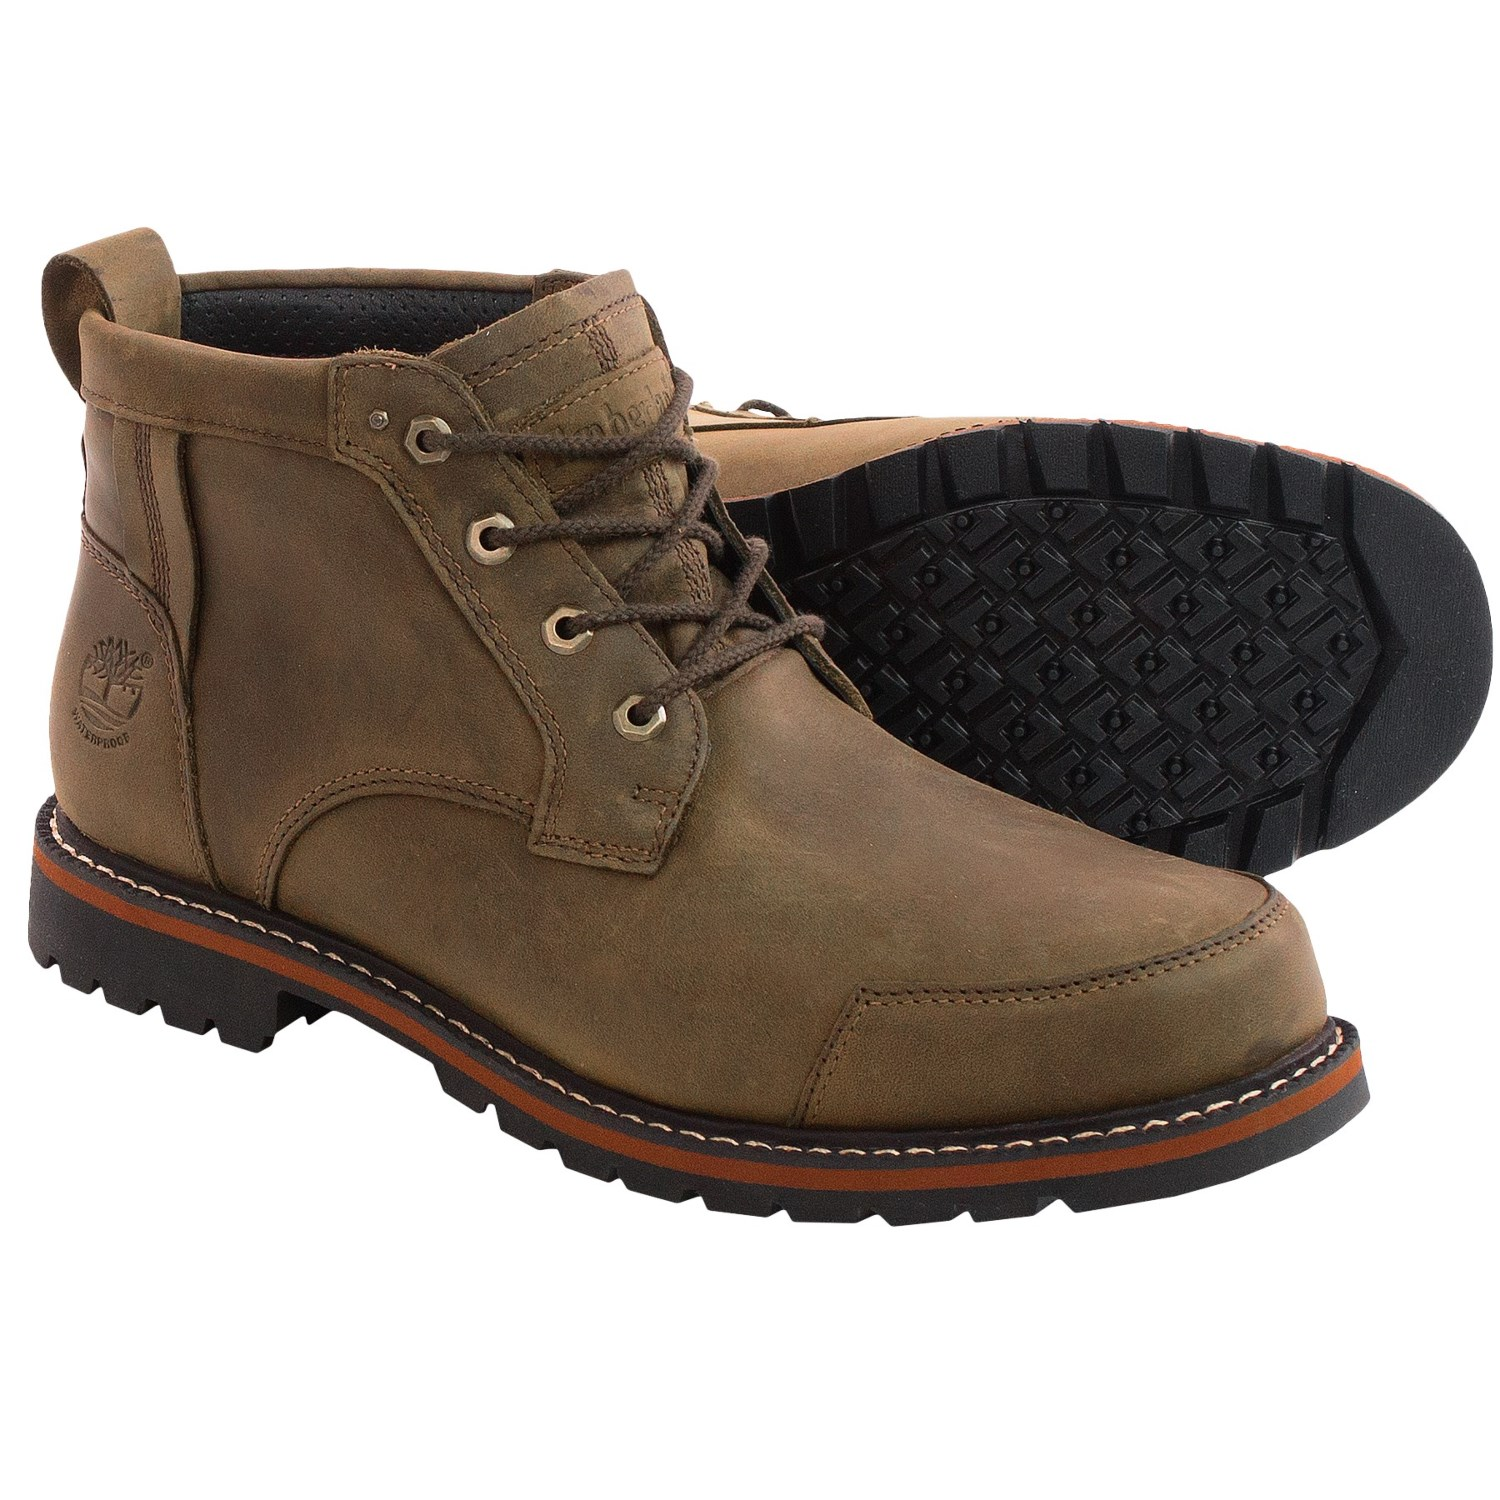 Waterproof Chukka Boots Men Images BOTH Ways S Shoes